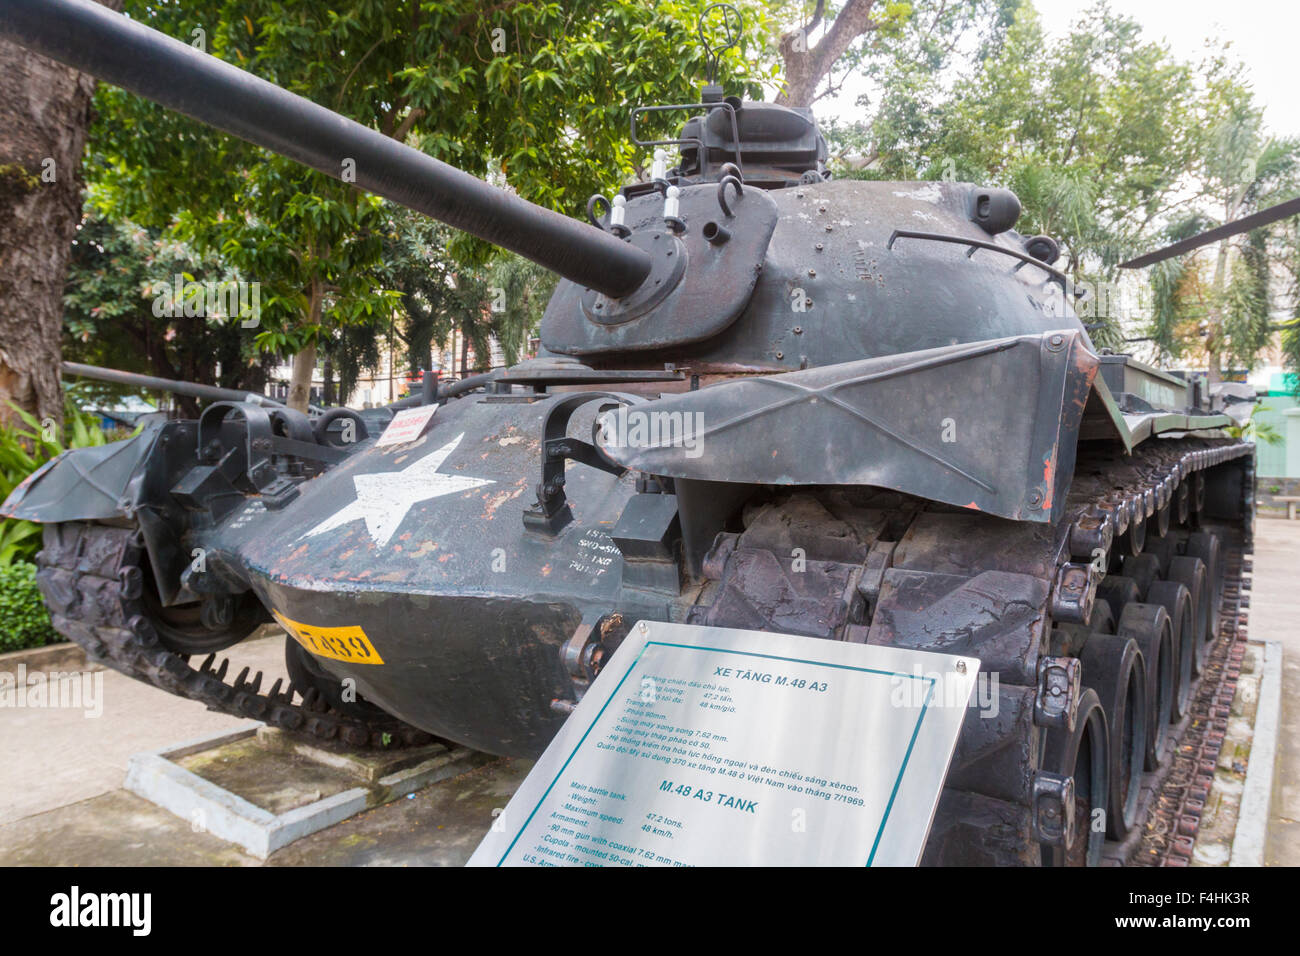 Vietnam war remnants museum in ho chi minh city showing american tank stock image